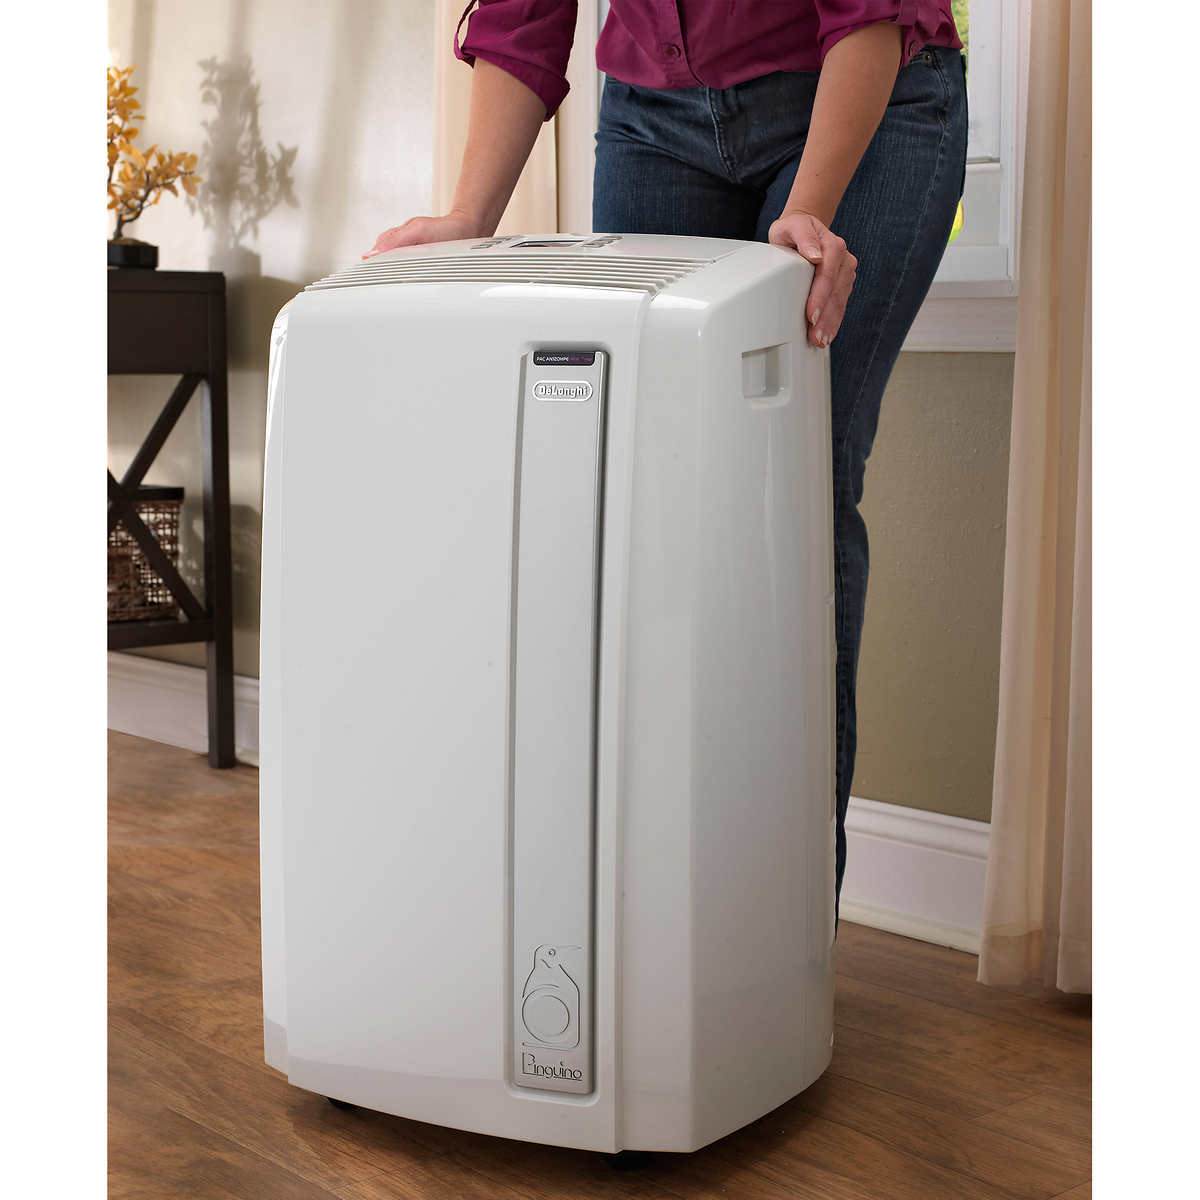 Air conditioner portable delonghi small ac unit delonghi for Small room portable air conditioners